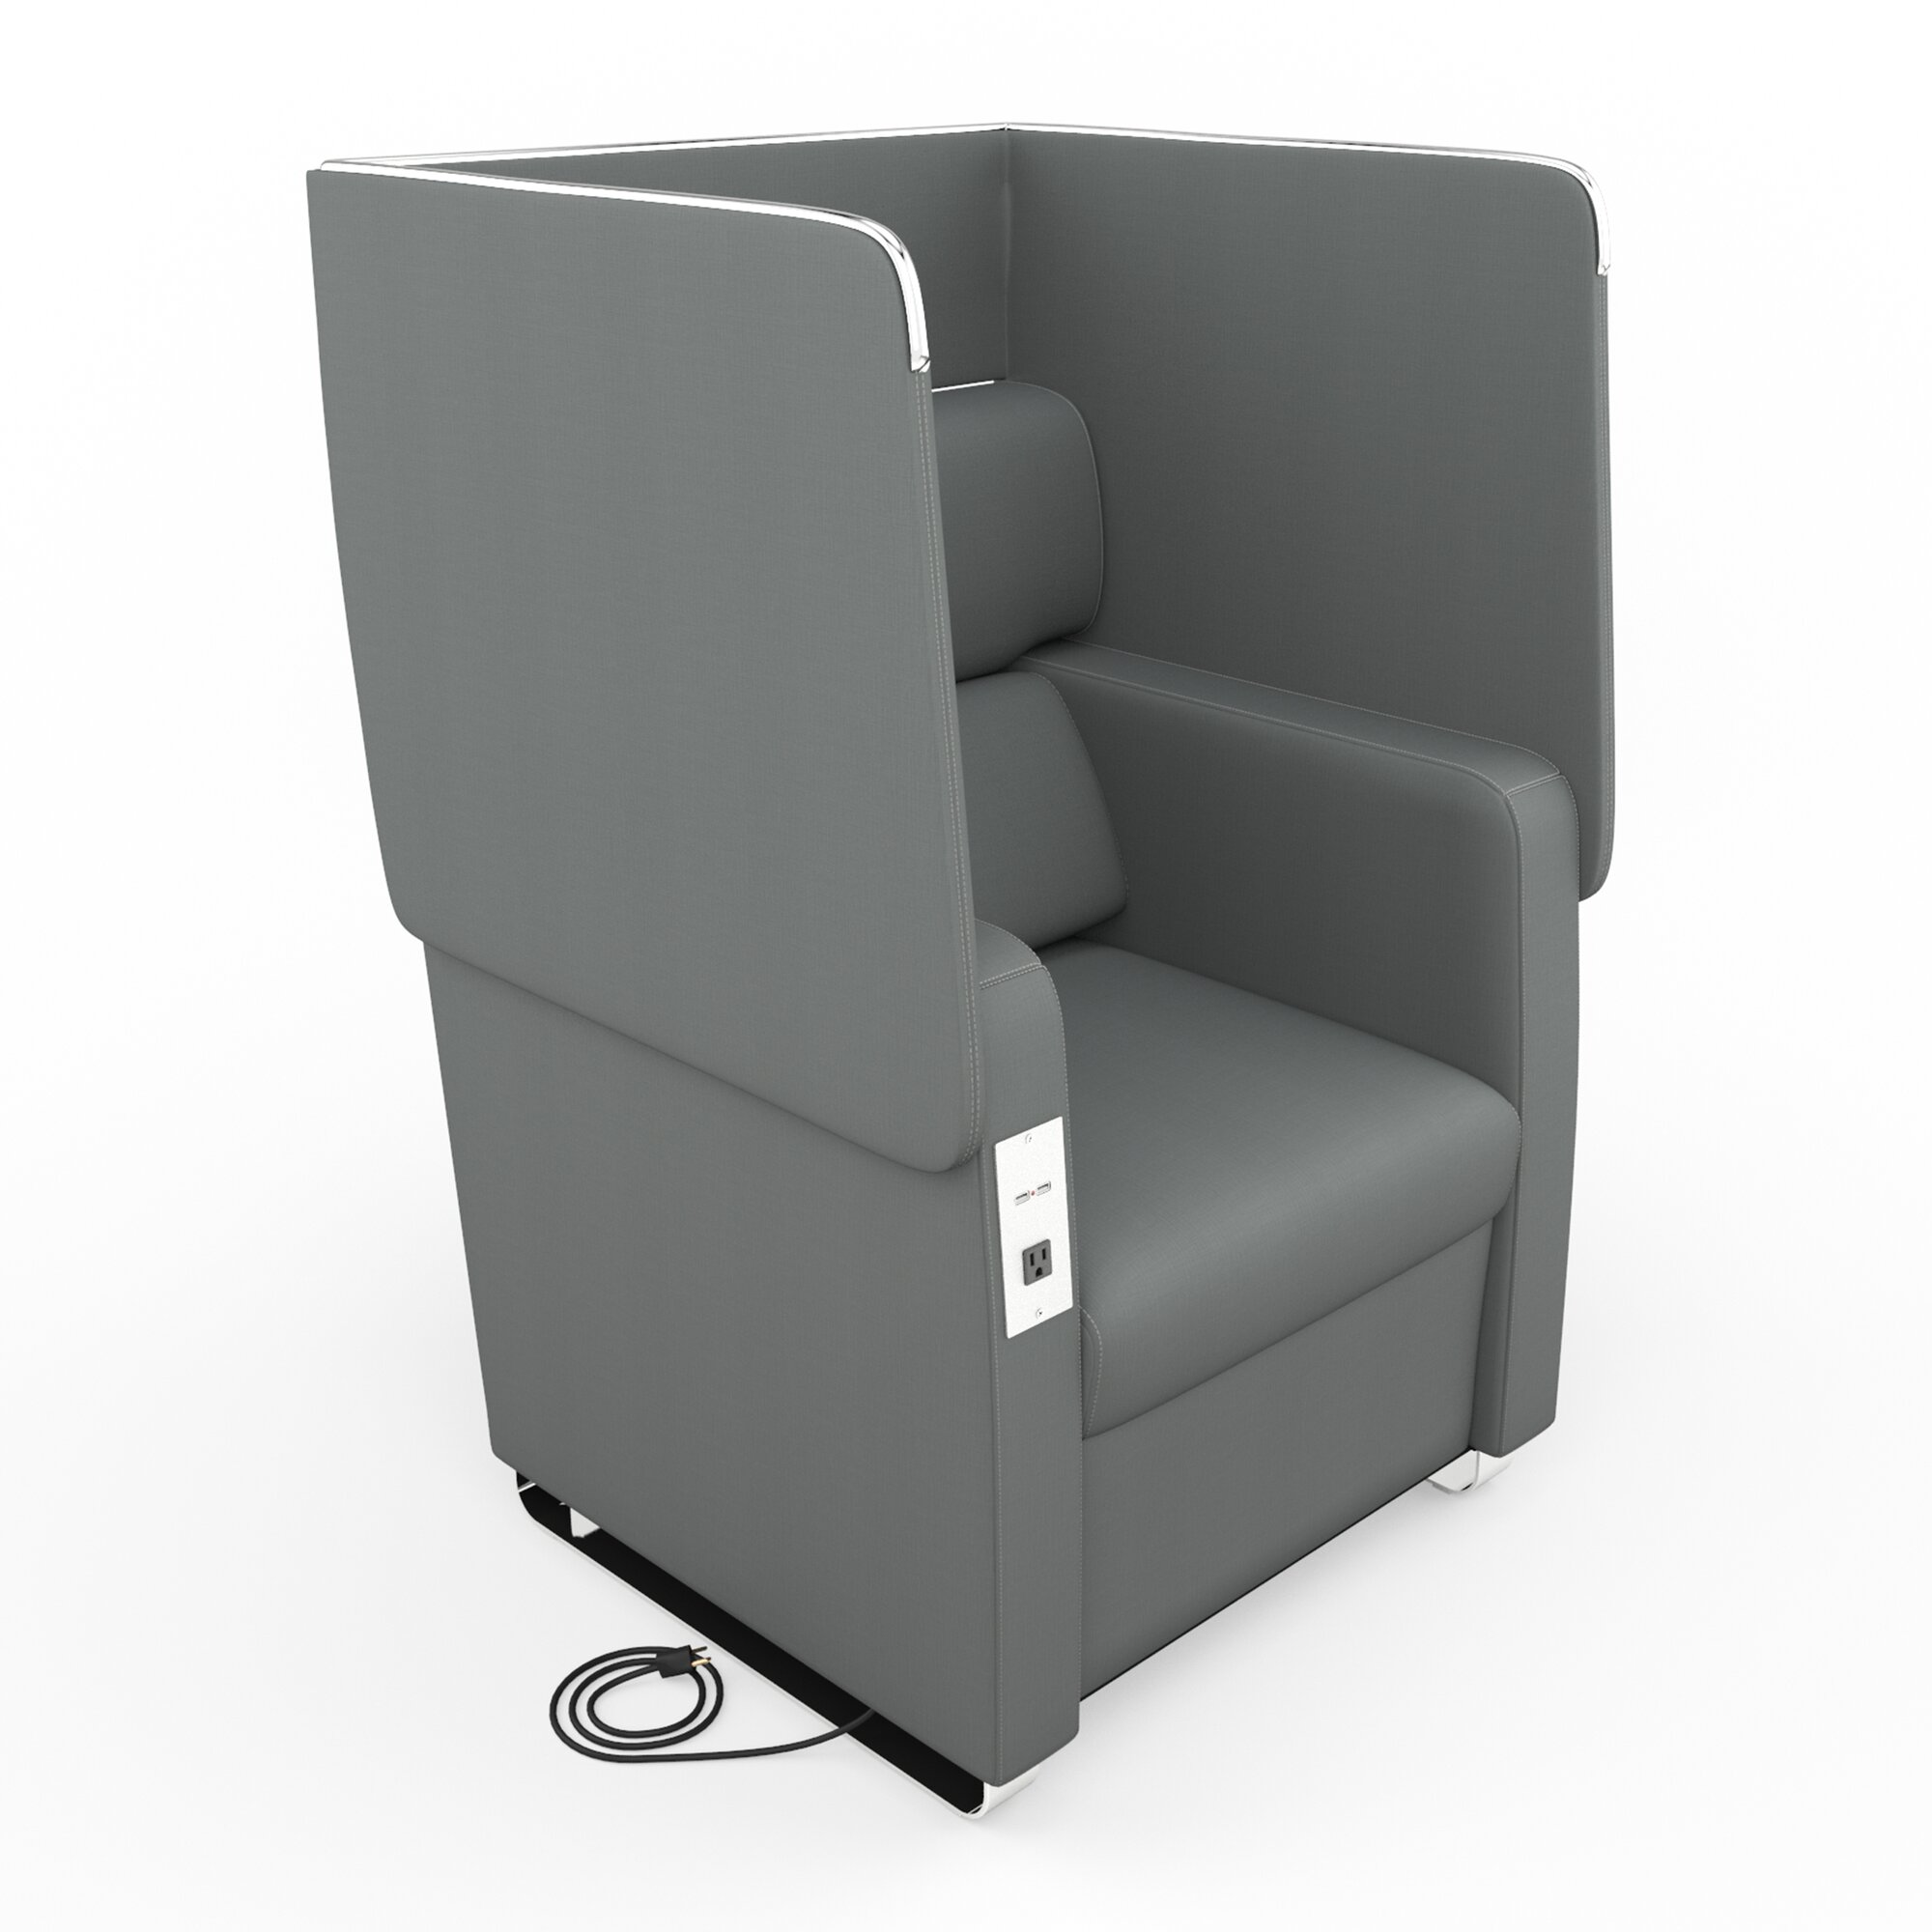 Convertible Armchair: OFM Morph Series Soft Seating Convertible Chair